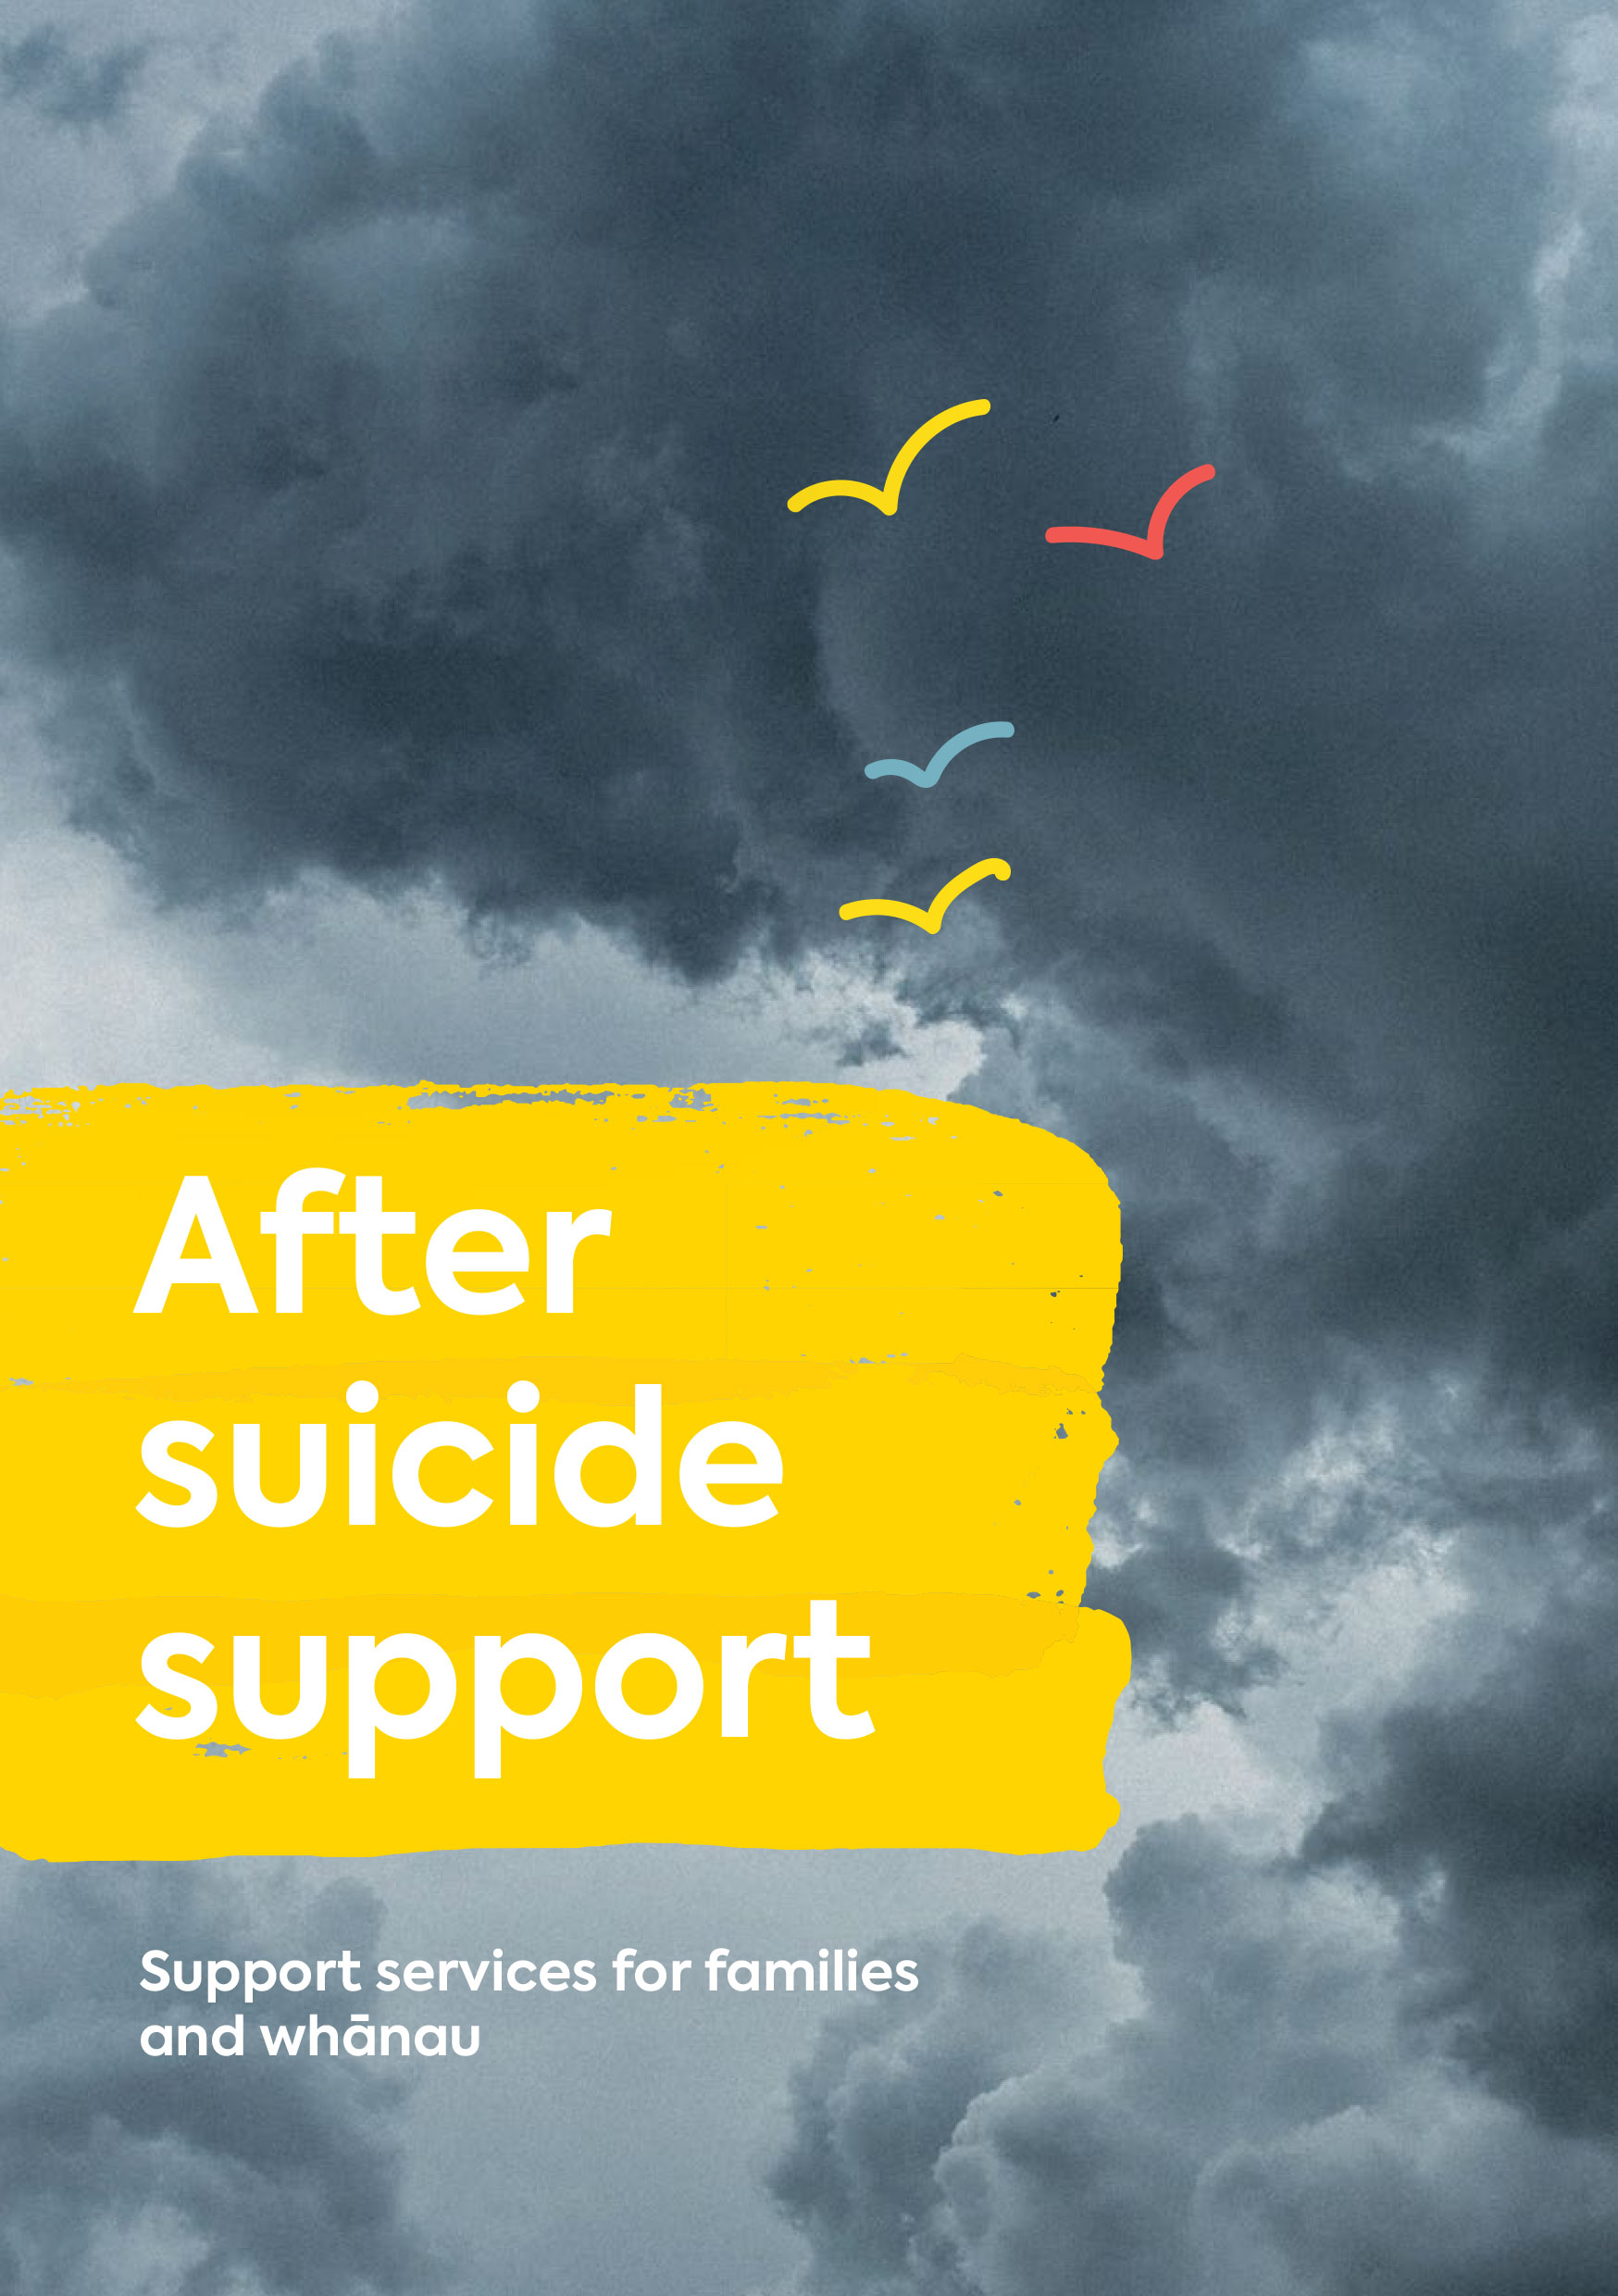 Suicide support services